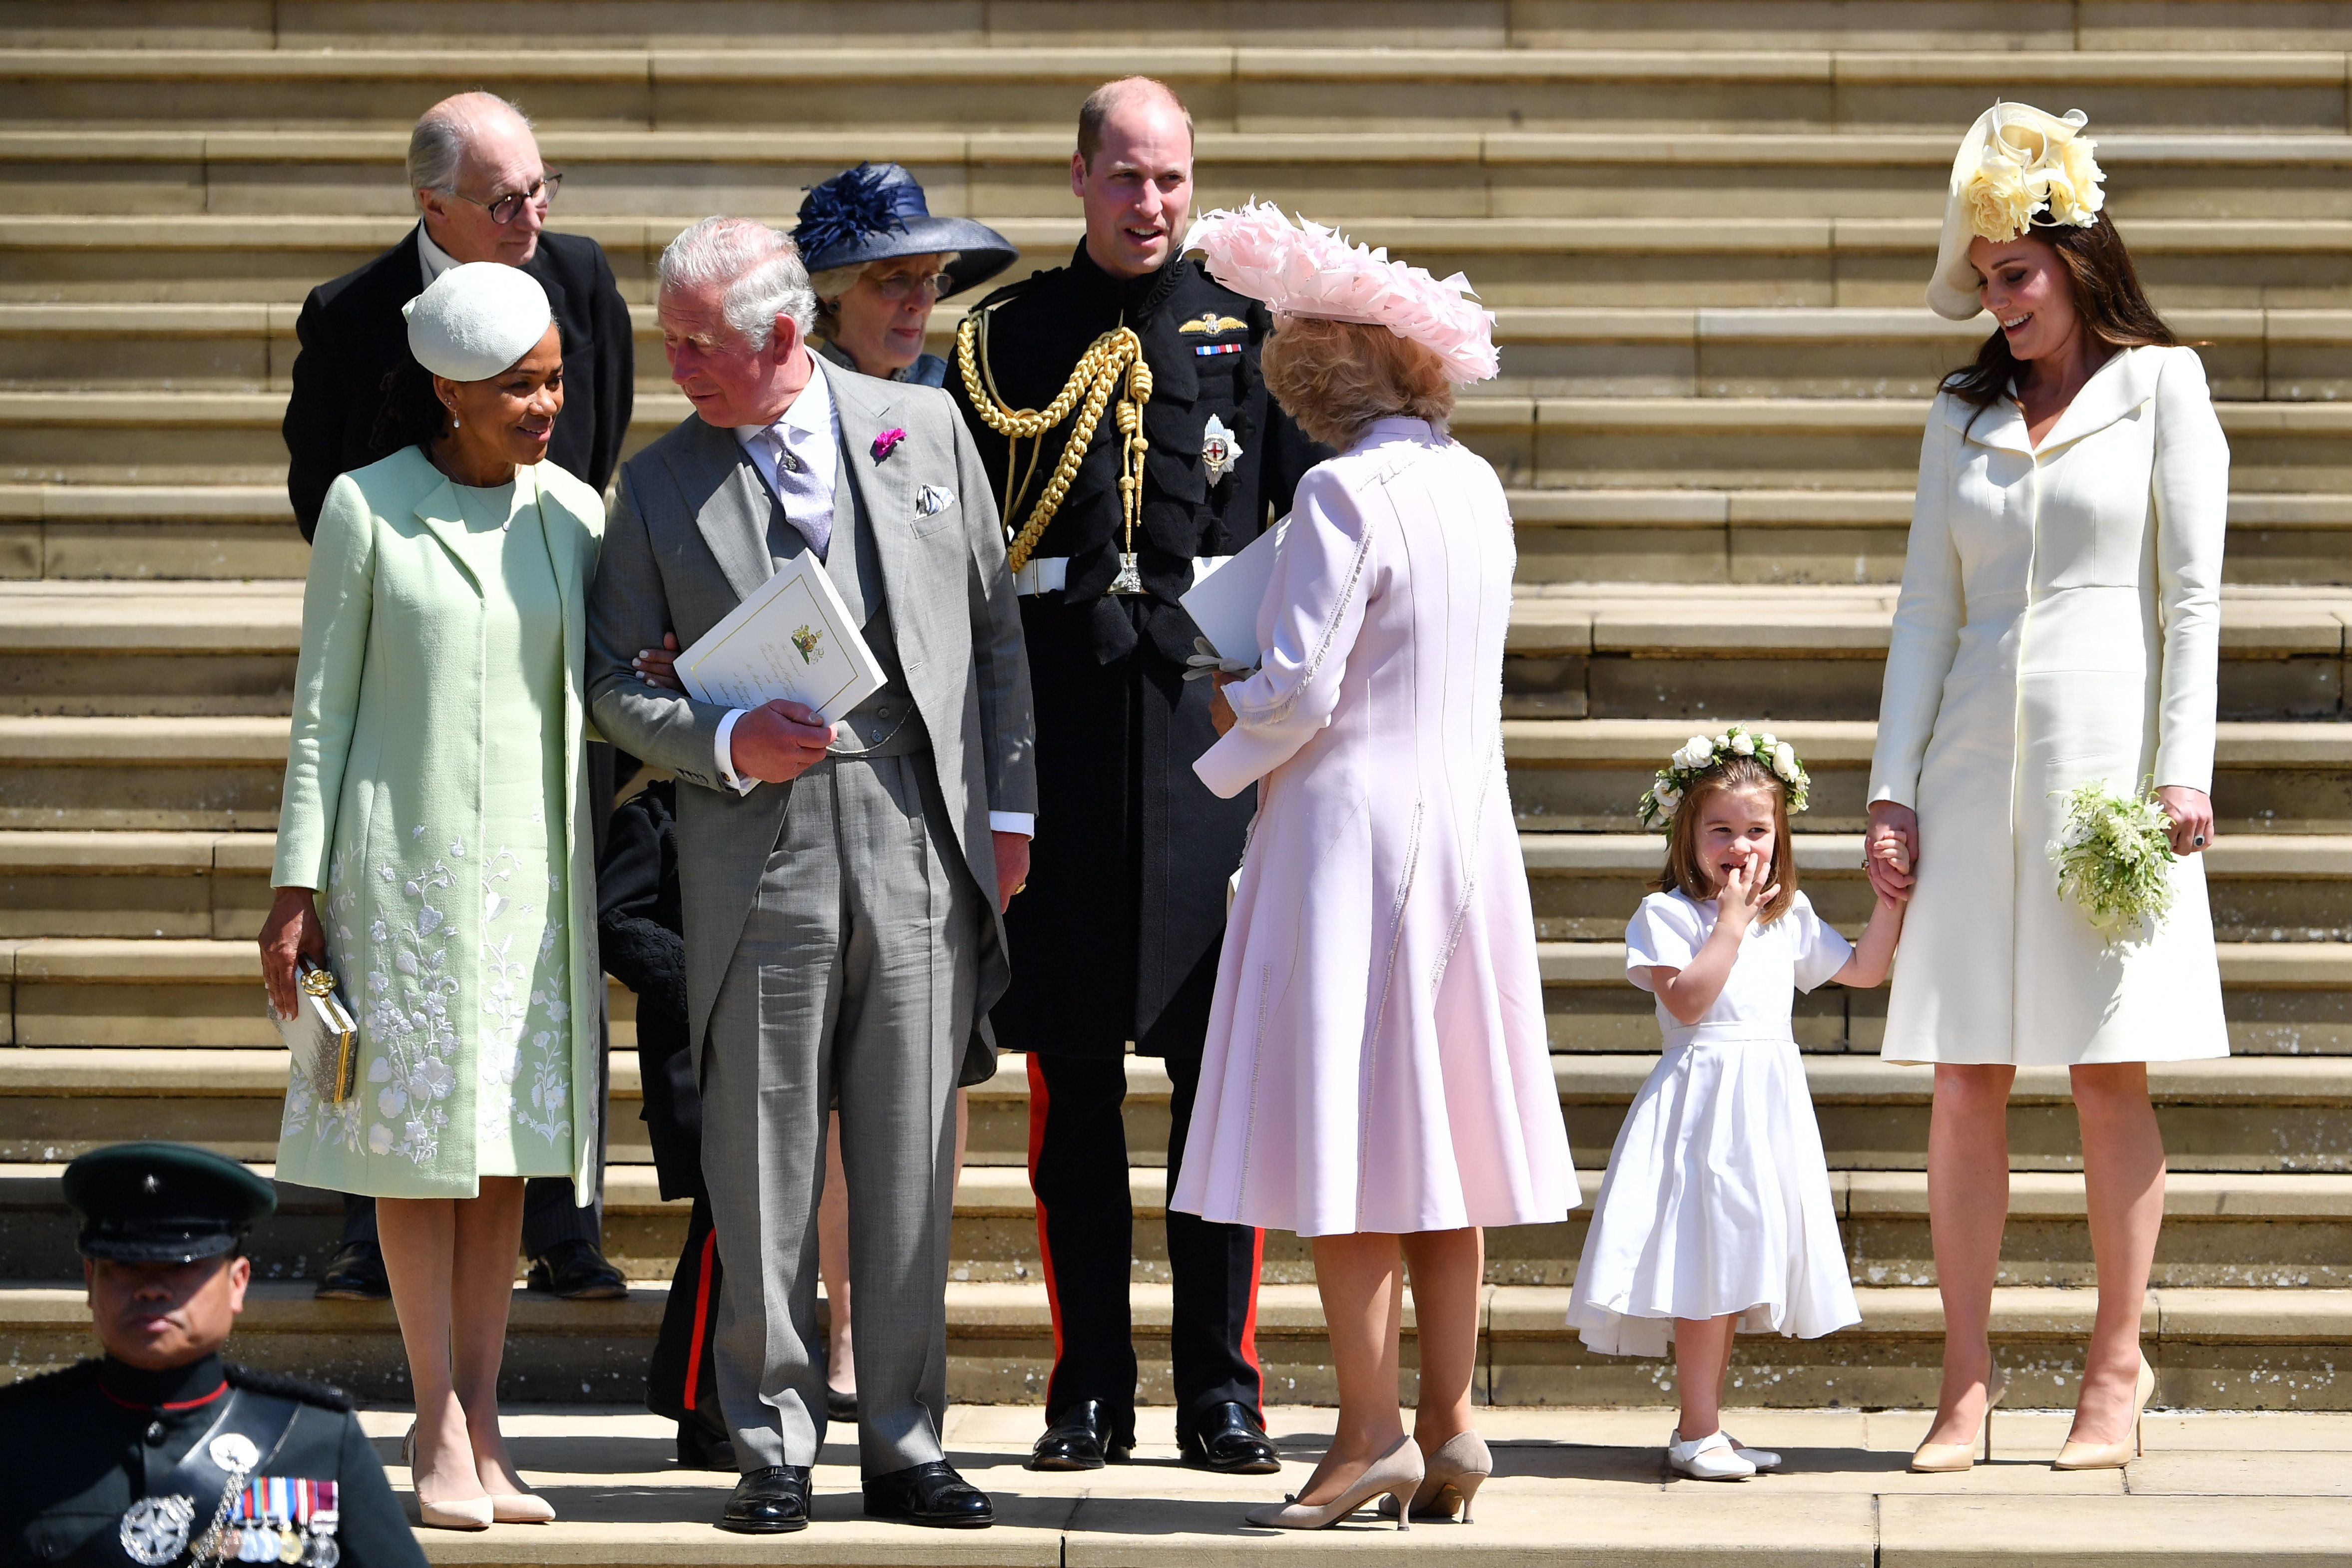 WINDSOR, UNITED KINGDOM - MAY 19:  (L-R) Doria Ragland, Prince Charles, Prince of Wales, Jane Fellowes, Prince William, Duke of Cambridge, Camilla, Duchess of Cornwall, and Catherine, Duchess of Cambridge holding her daughter Princess Charlotte's hand as they leave from the West Door of St George's Chapel, Windsor Castle, in Windsor on May 19, 2018 in Windsor, England. (Photo by  Ben STANSALL - WPA Pool/Getty Images)